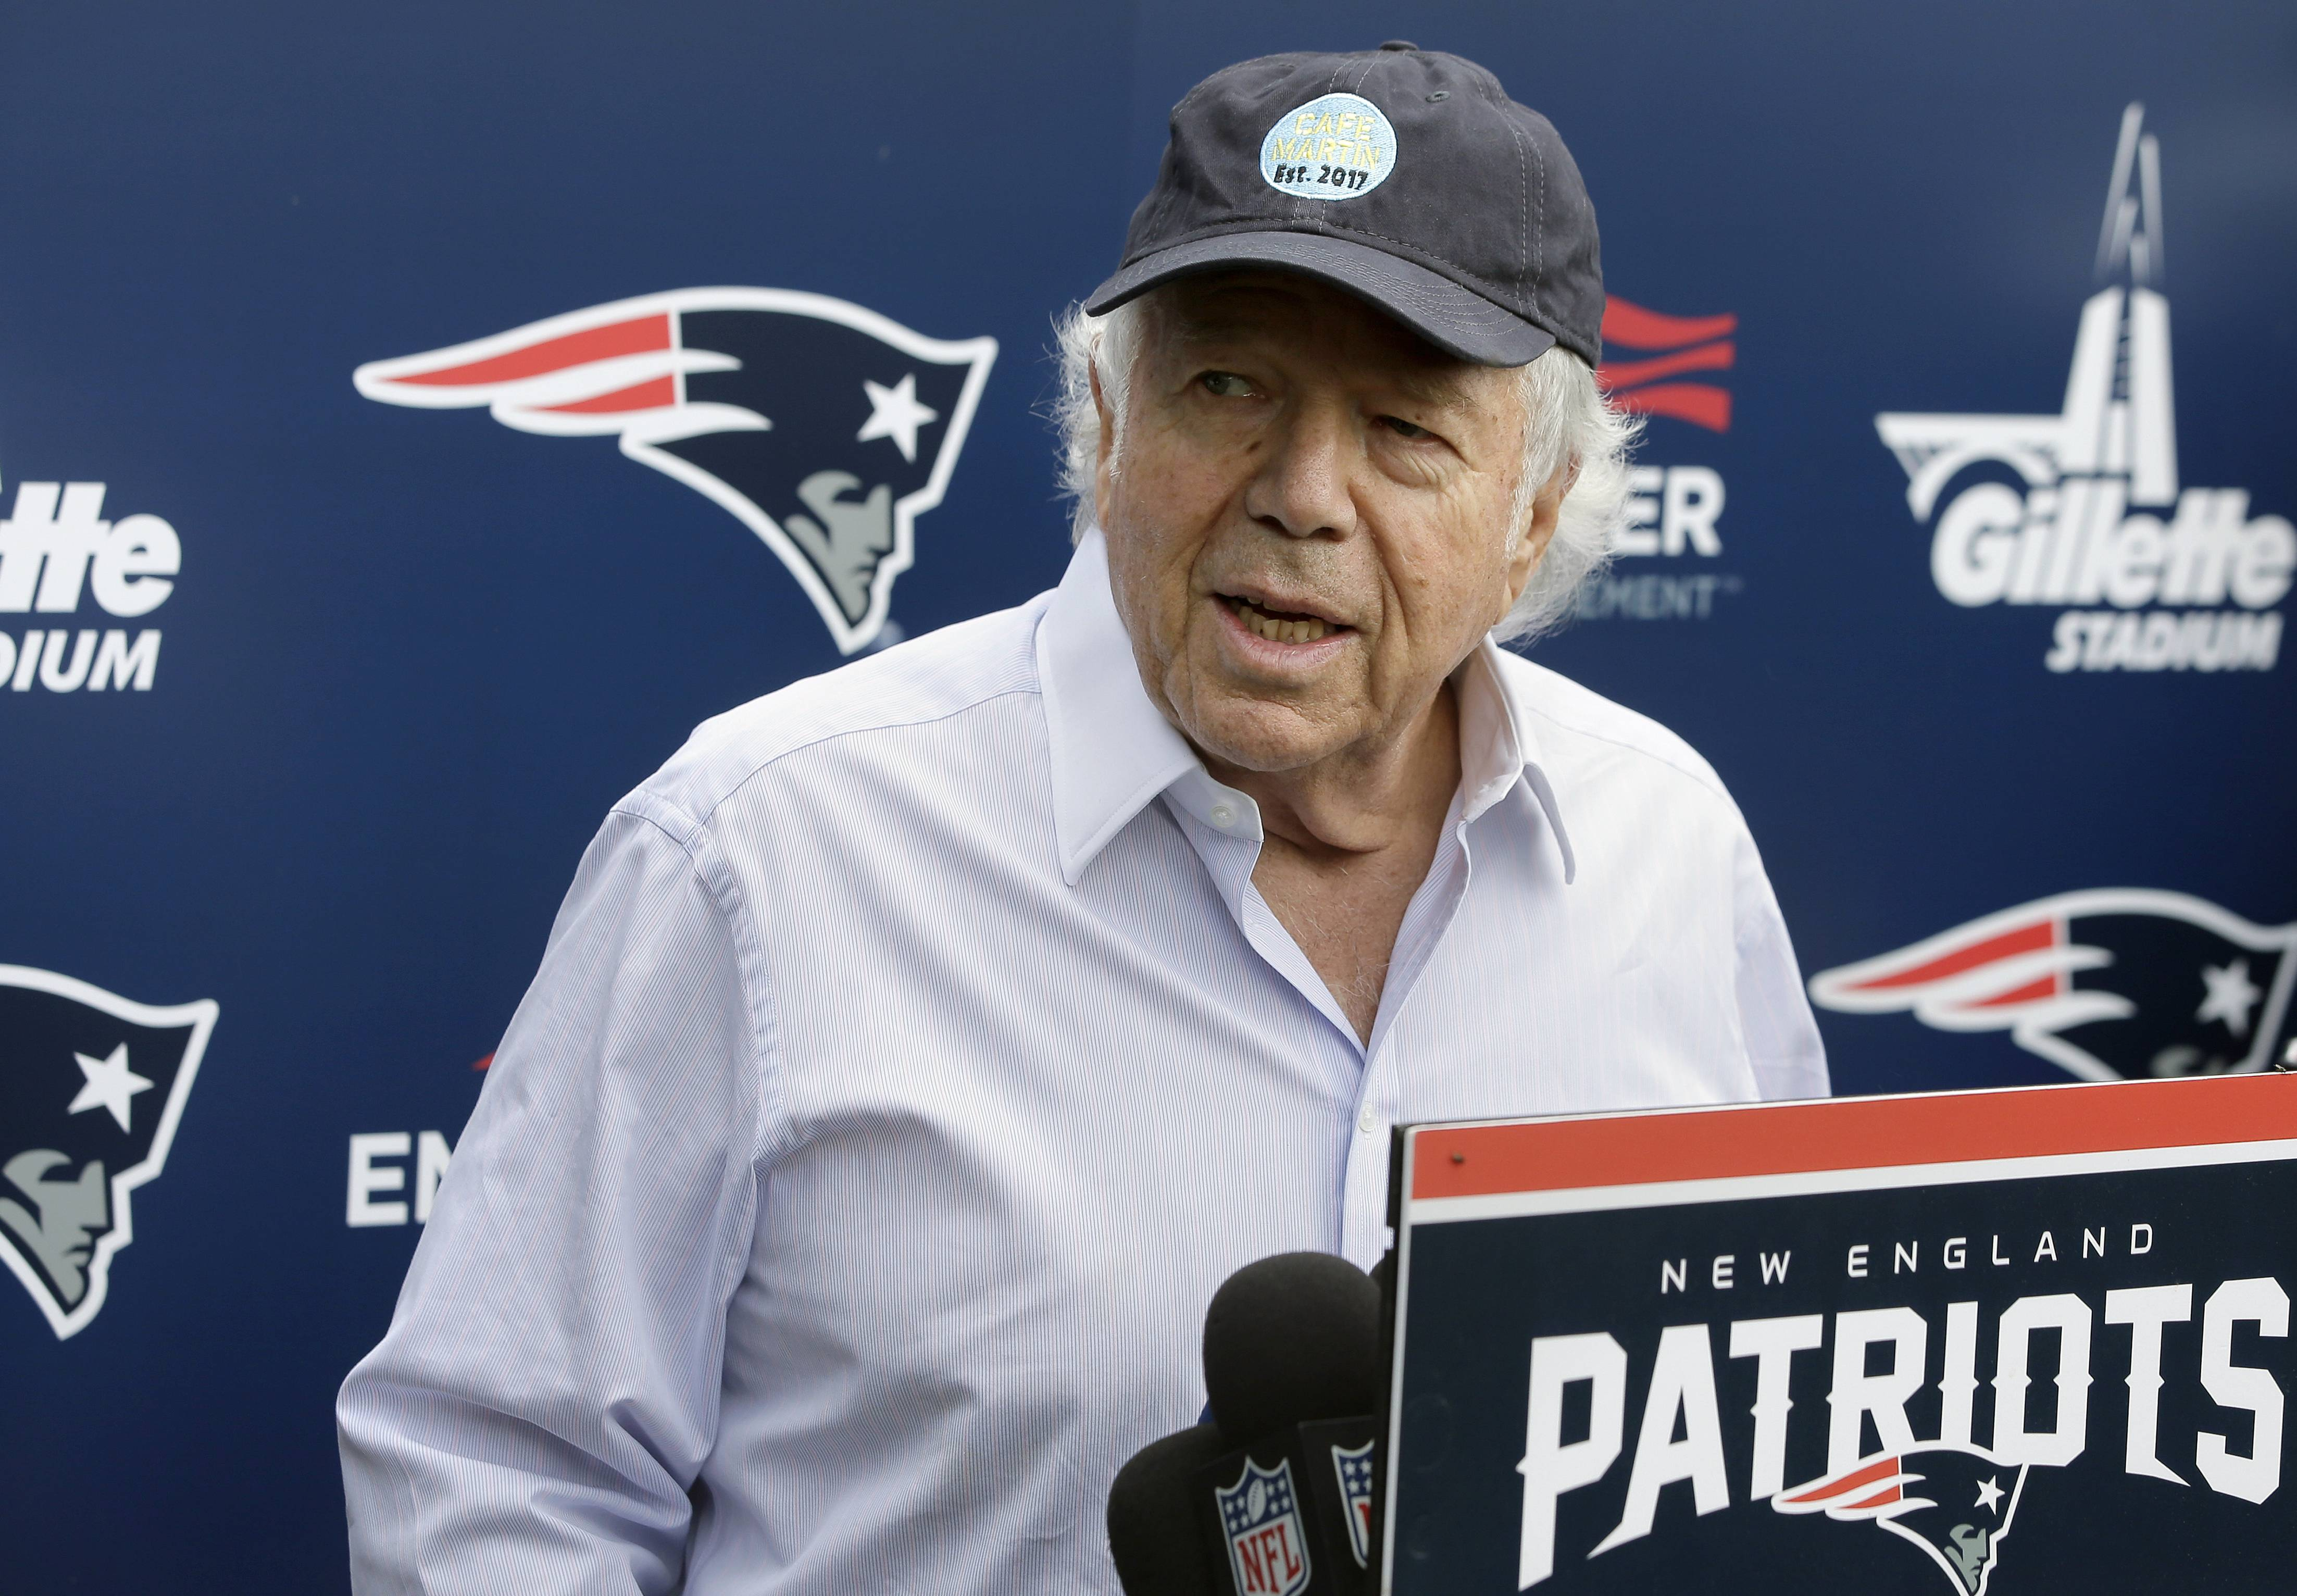 Police in Florida have charged New England Patriots owner Robert Kraft with misdemeanor solicitation of prostitution, saying they have videotape of him paying for a sex act inside an illicit massage parlor. Jupiter police told reporters Friday that the 77-year-old Kraft has not been arrested.